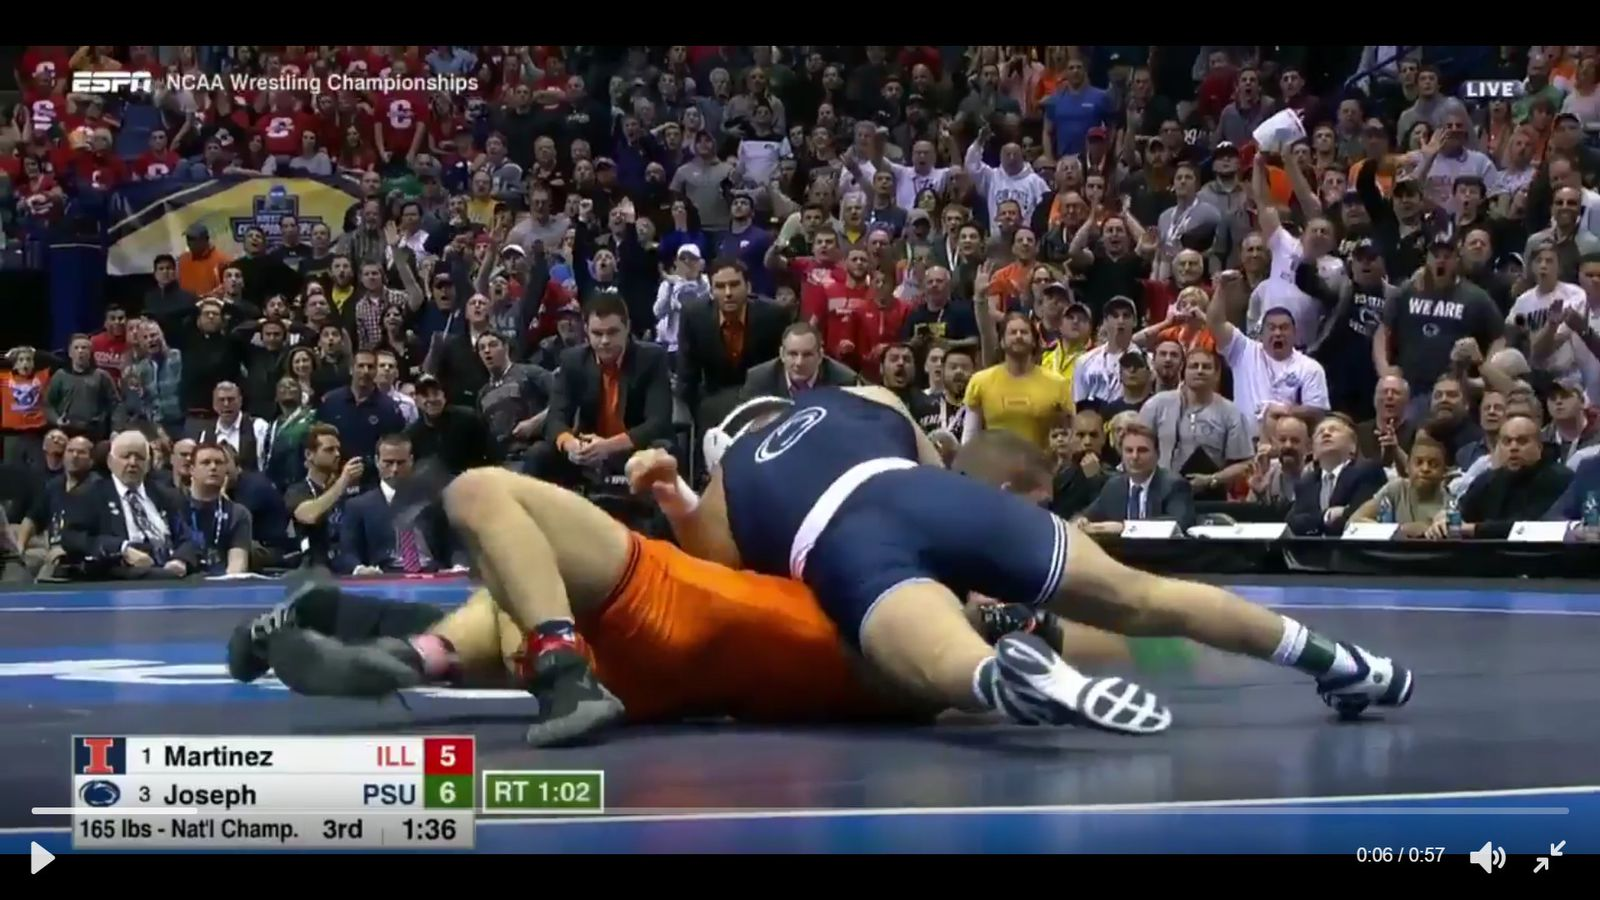 What is FloWrestling known for?